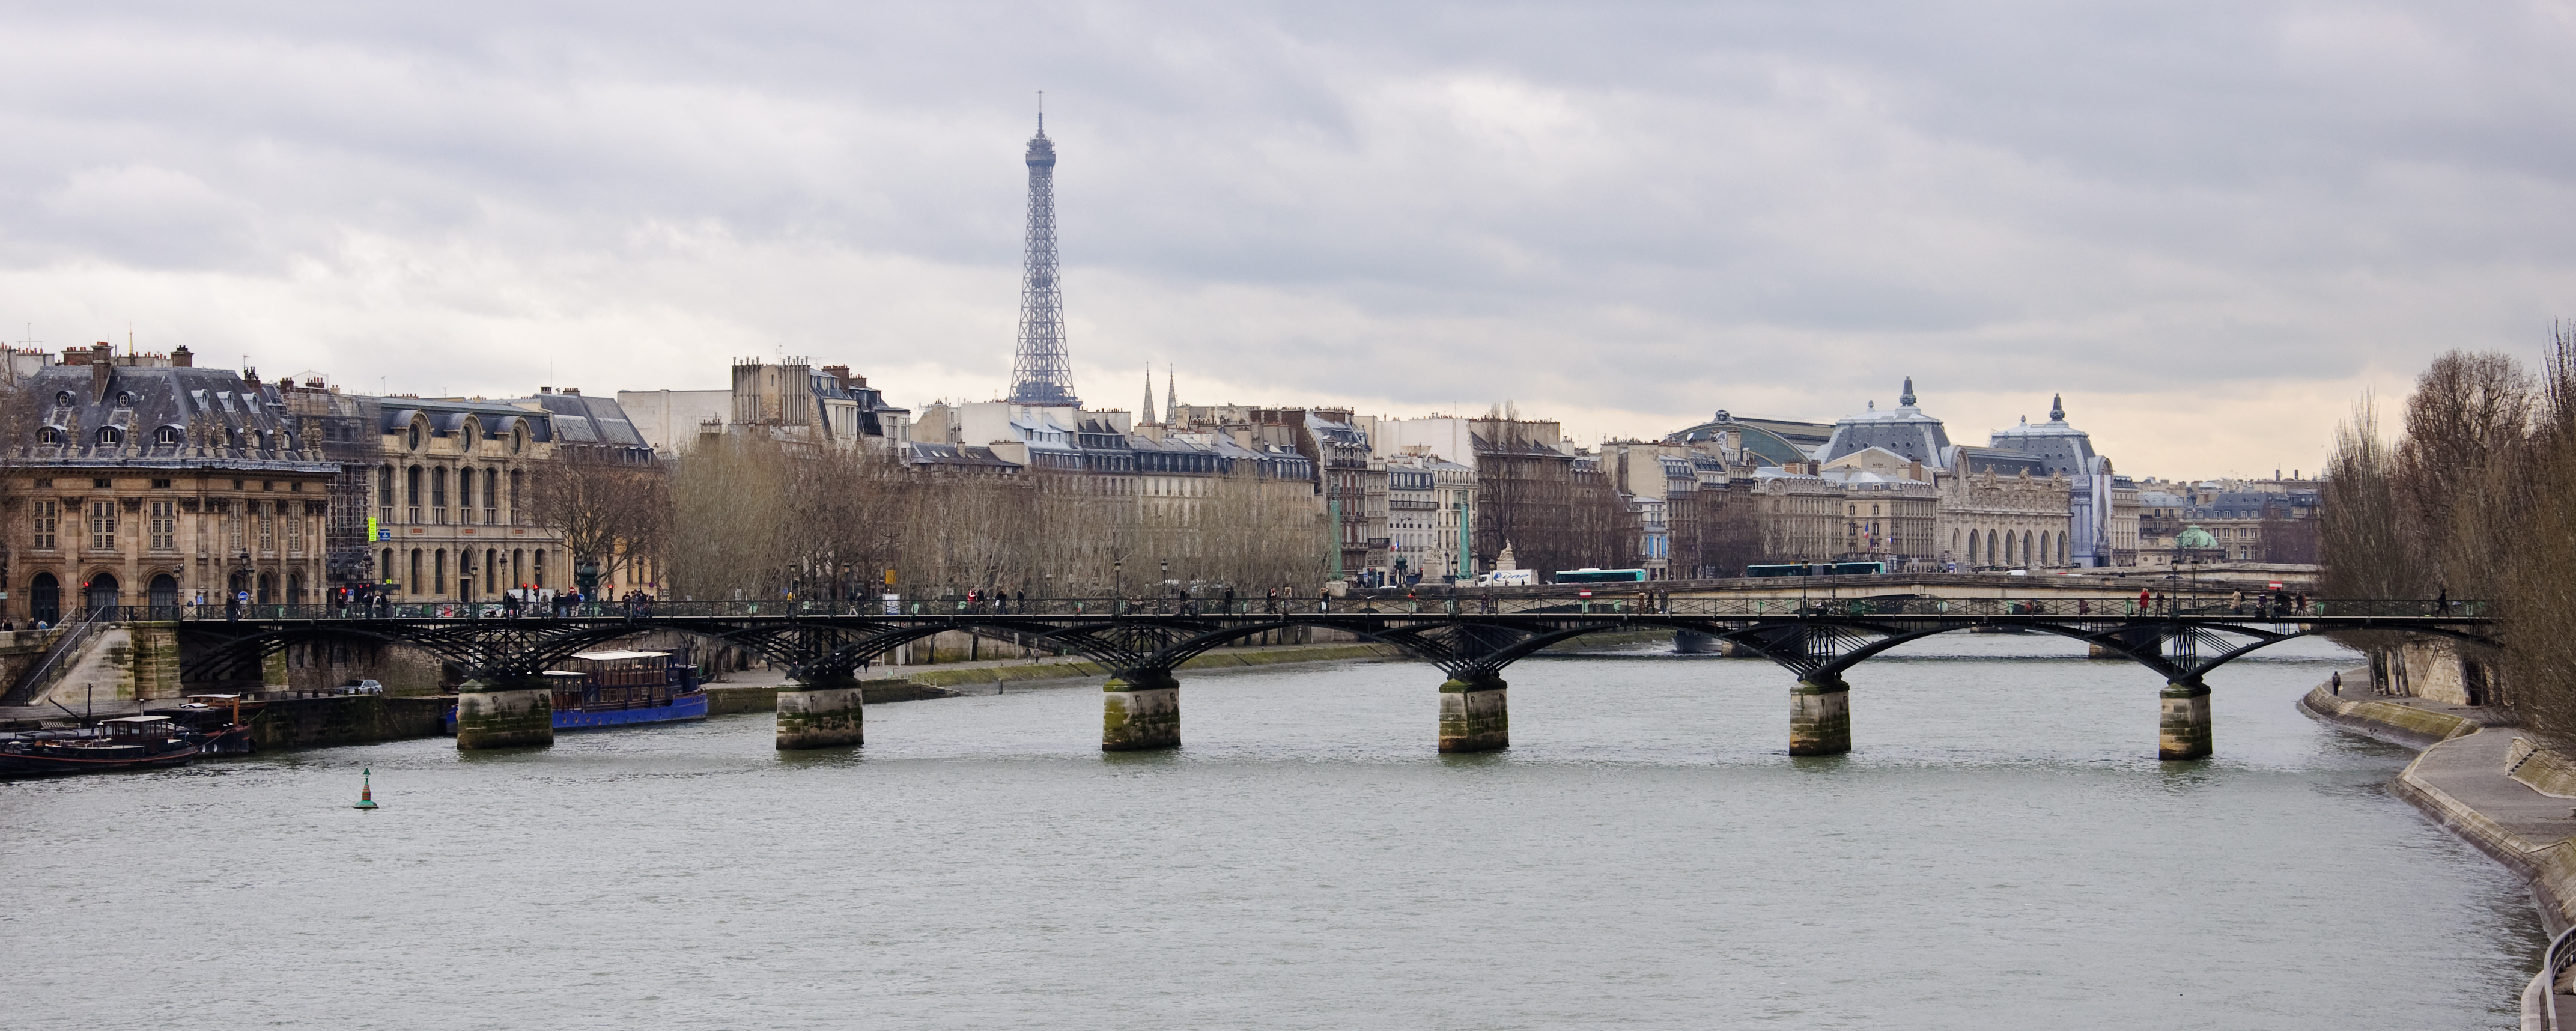 file paris pont des wikimedia commons. Black Bedroom Furniture Sets. Home Design Ideas